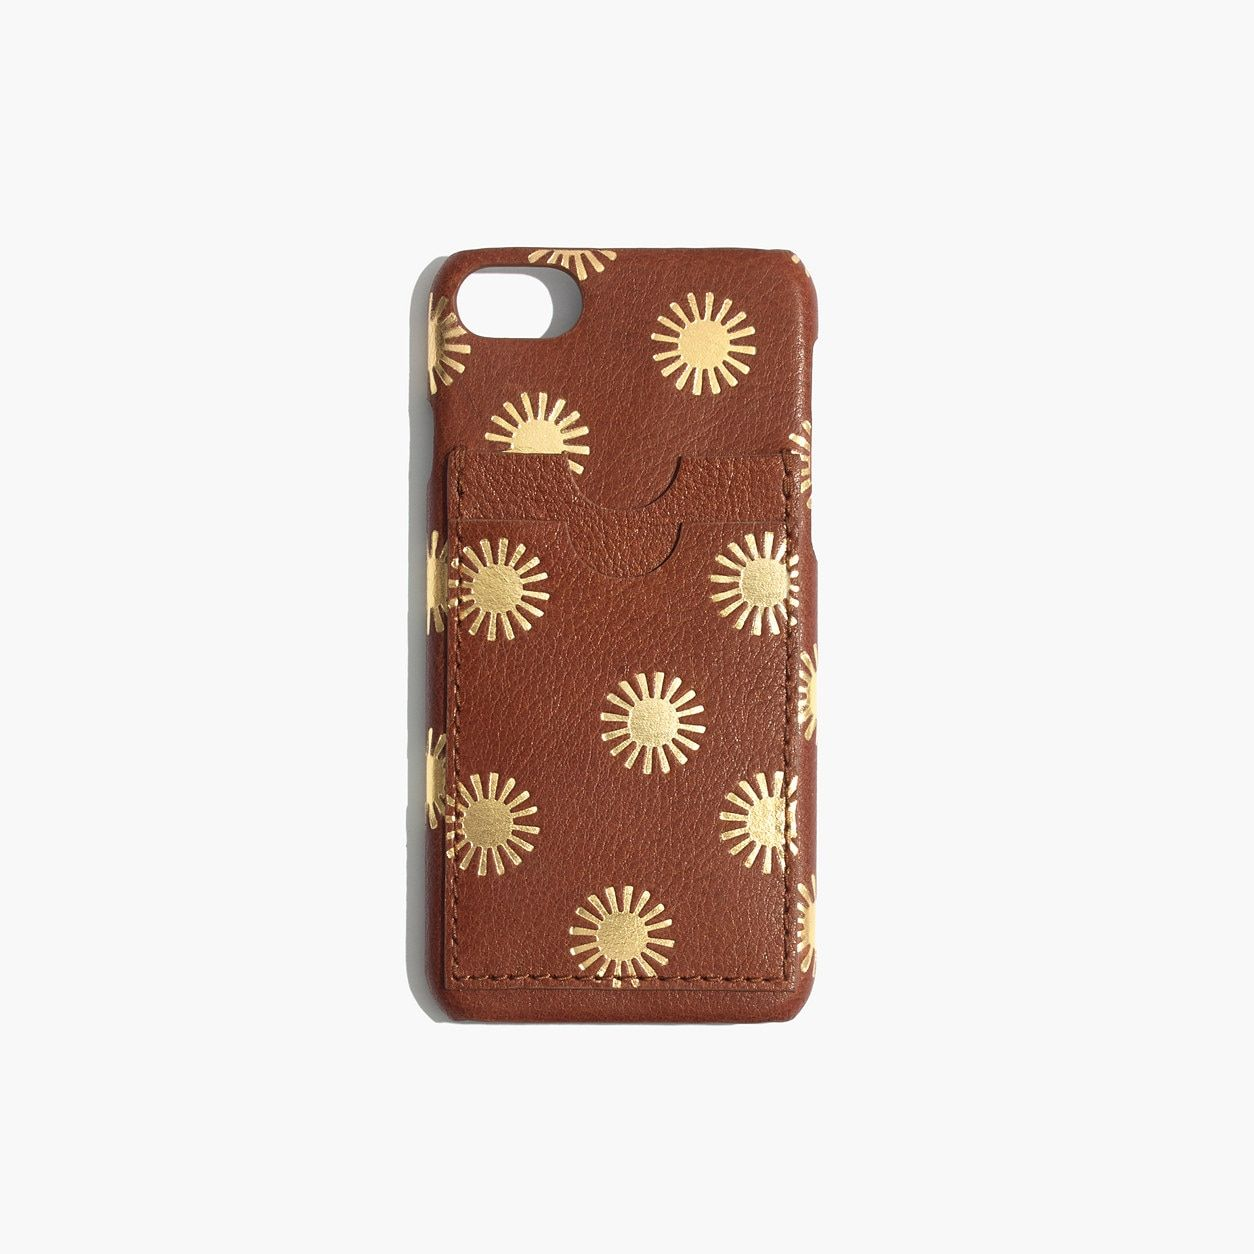 premium selection 858ae 3df9e Madewell Leather Carryall Case For Iphone 6/7/8: Sun Embossed ...